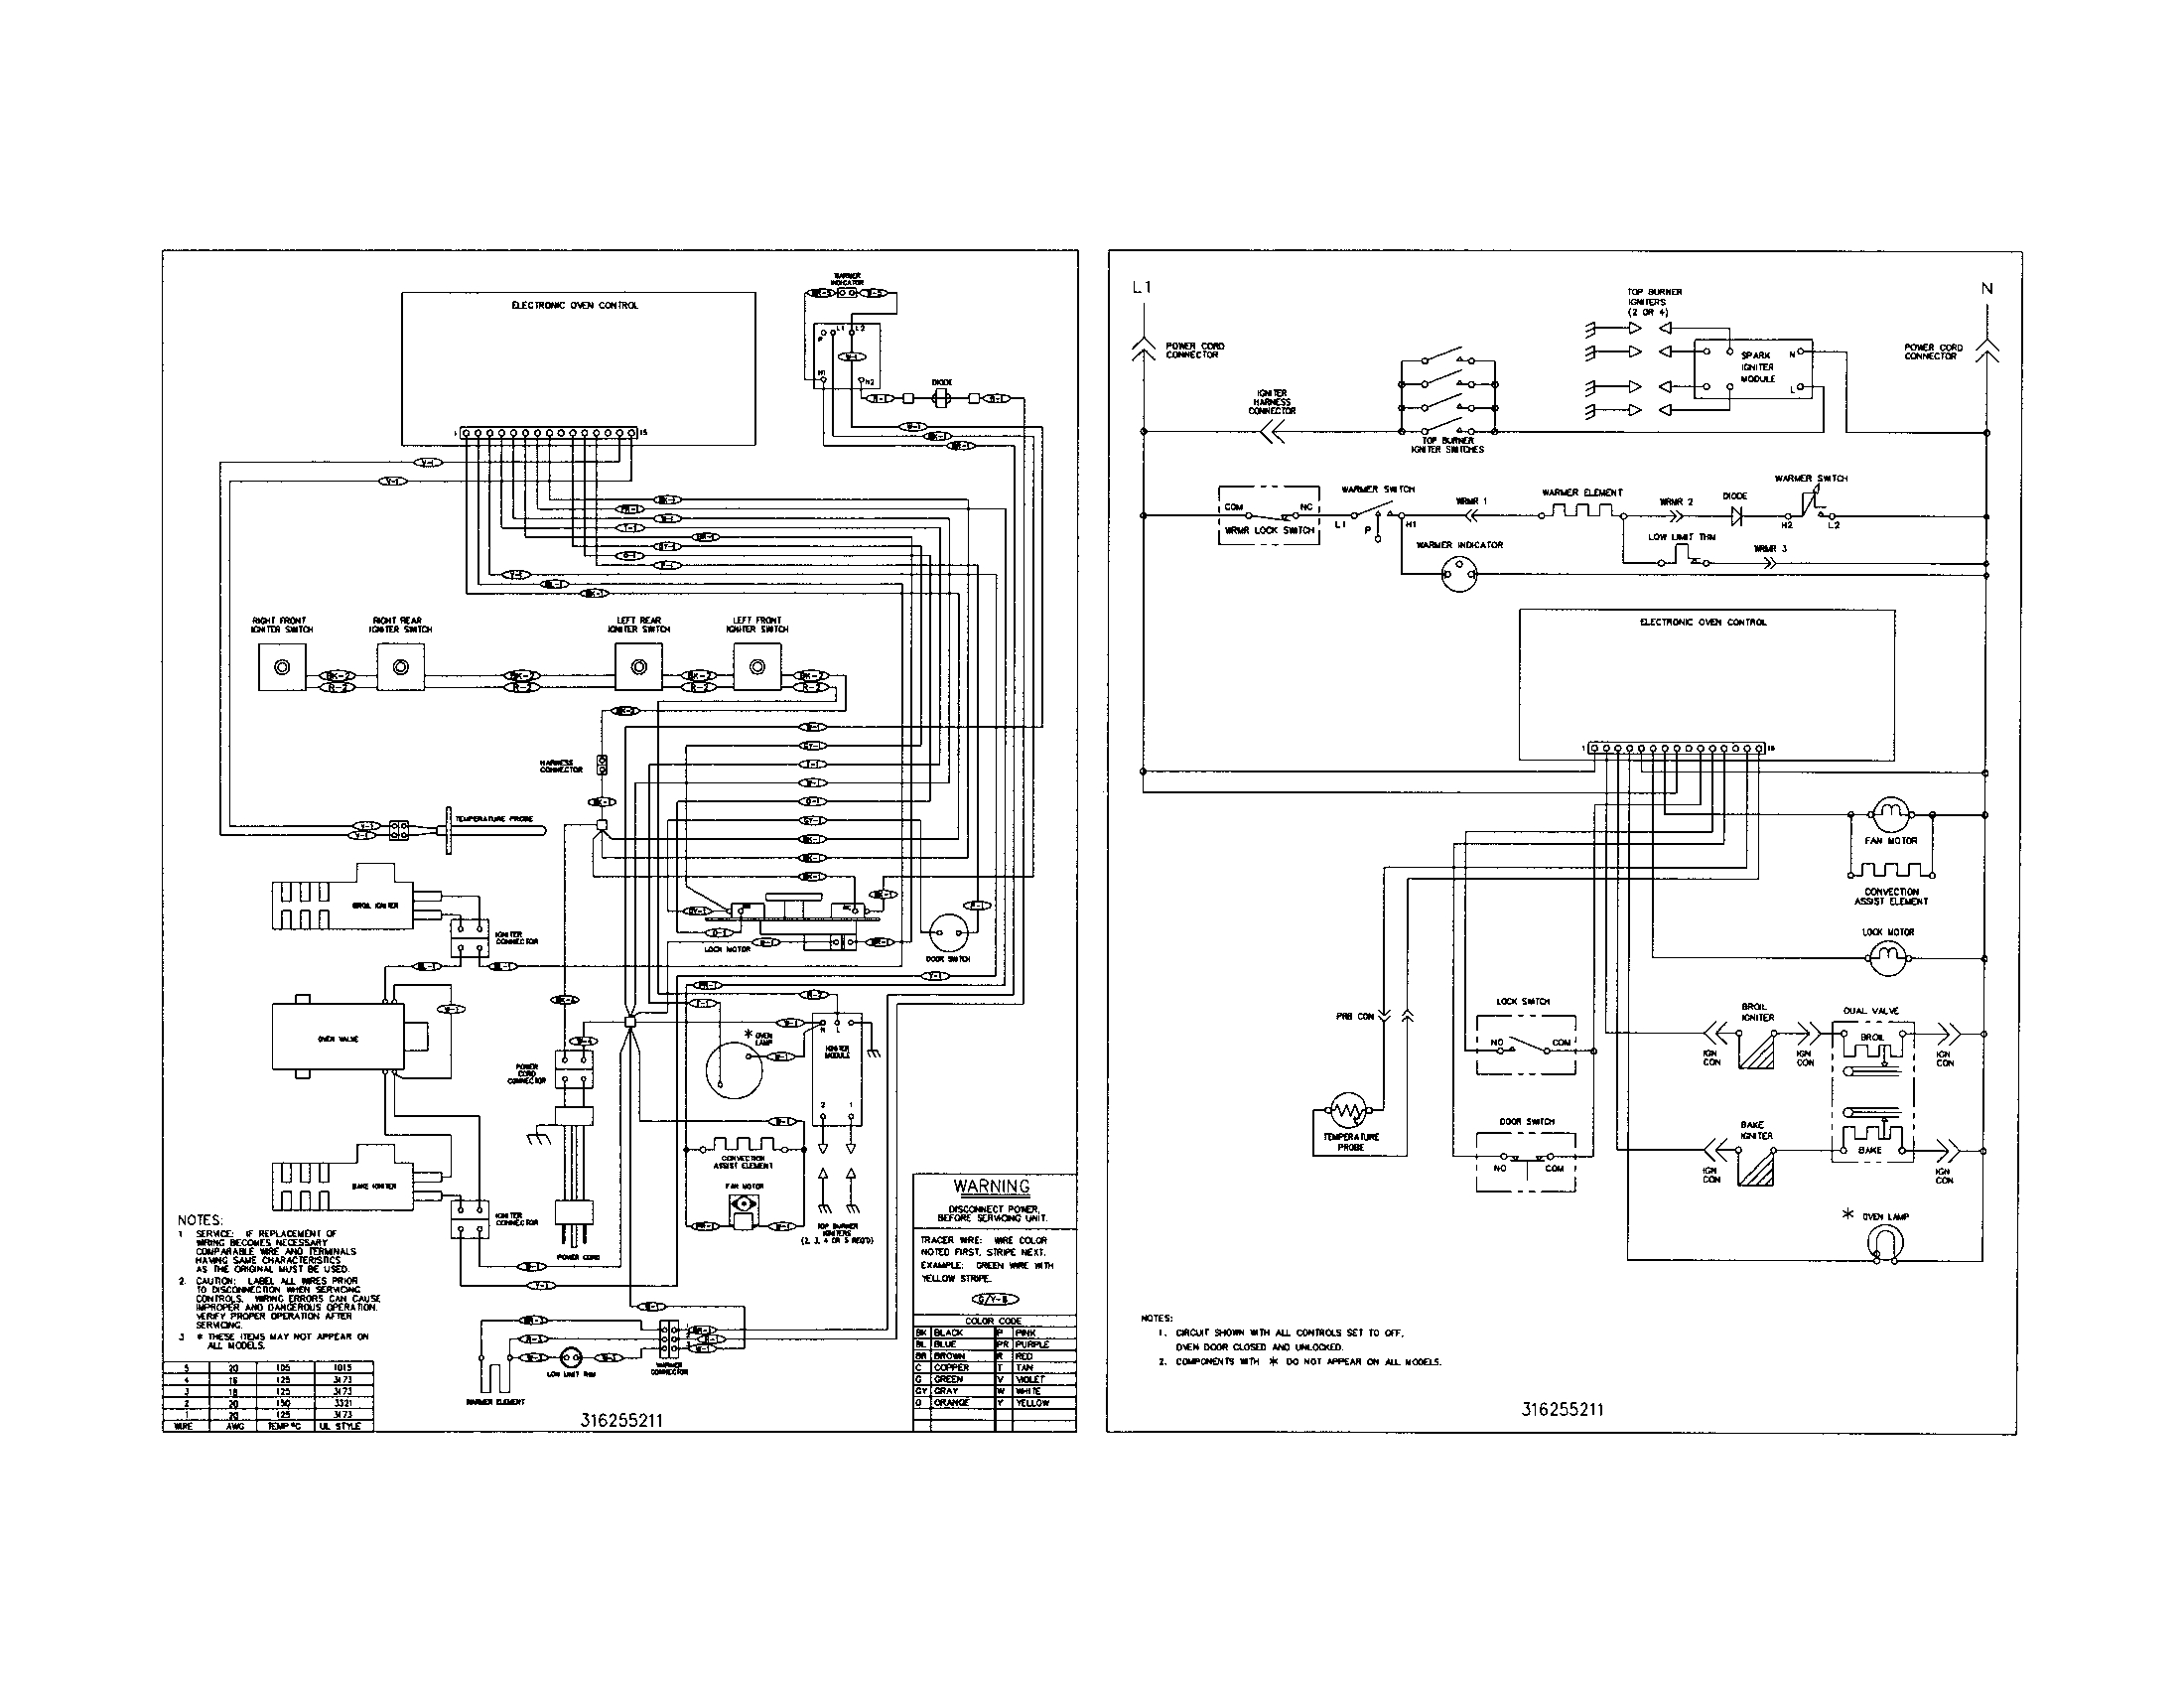 frigidaire dryer wiring diagram Download-Frigidaire Dryer Wiring Diagram Luxury Amazing Free Sample Ideas Frigidaire Dryer Wiring Diagram Ideas 17-m